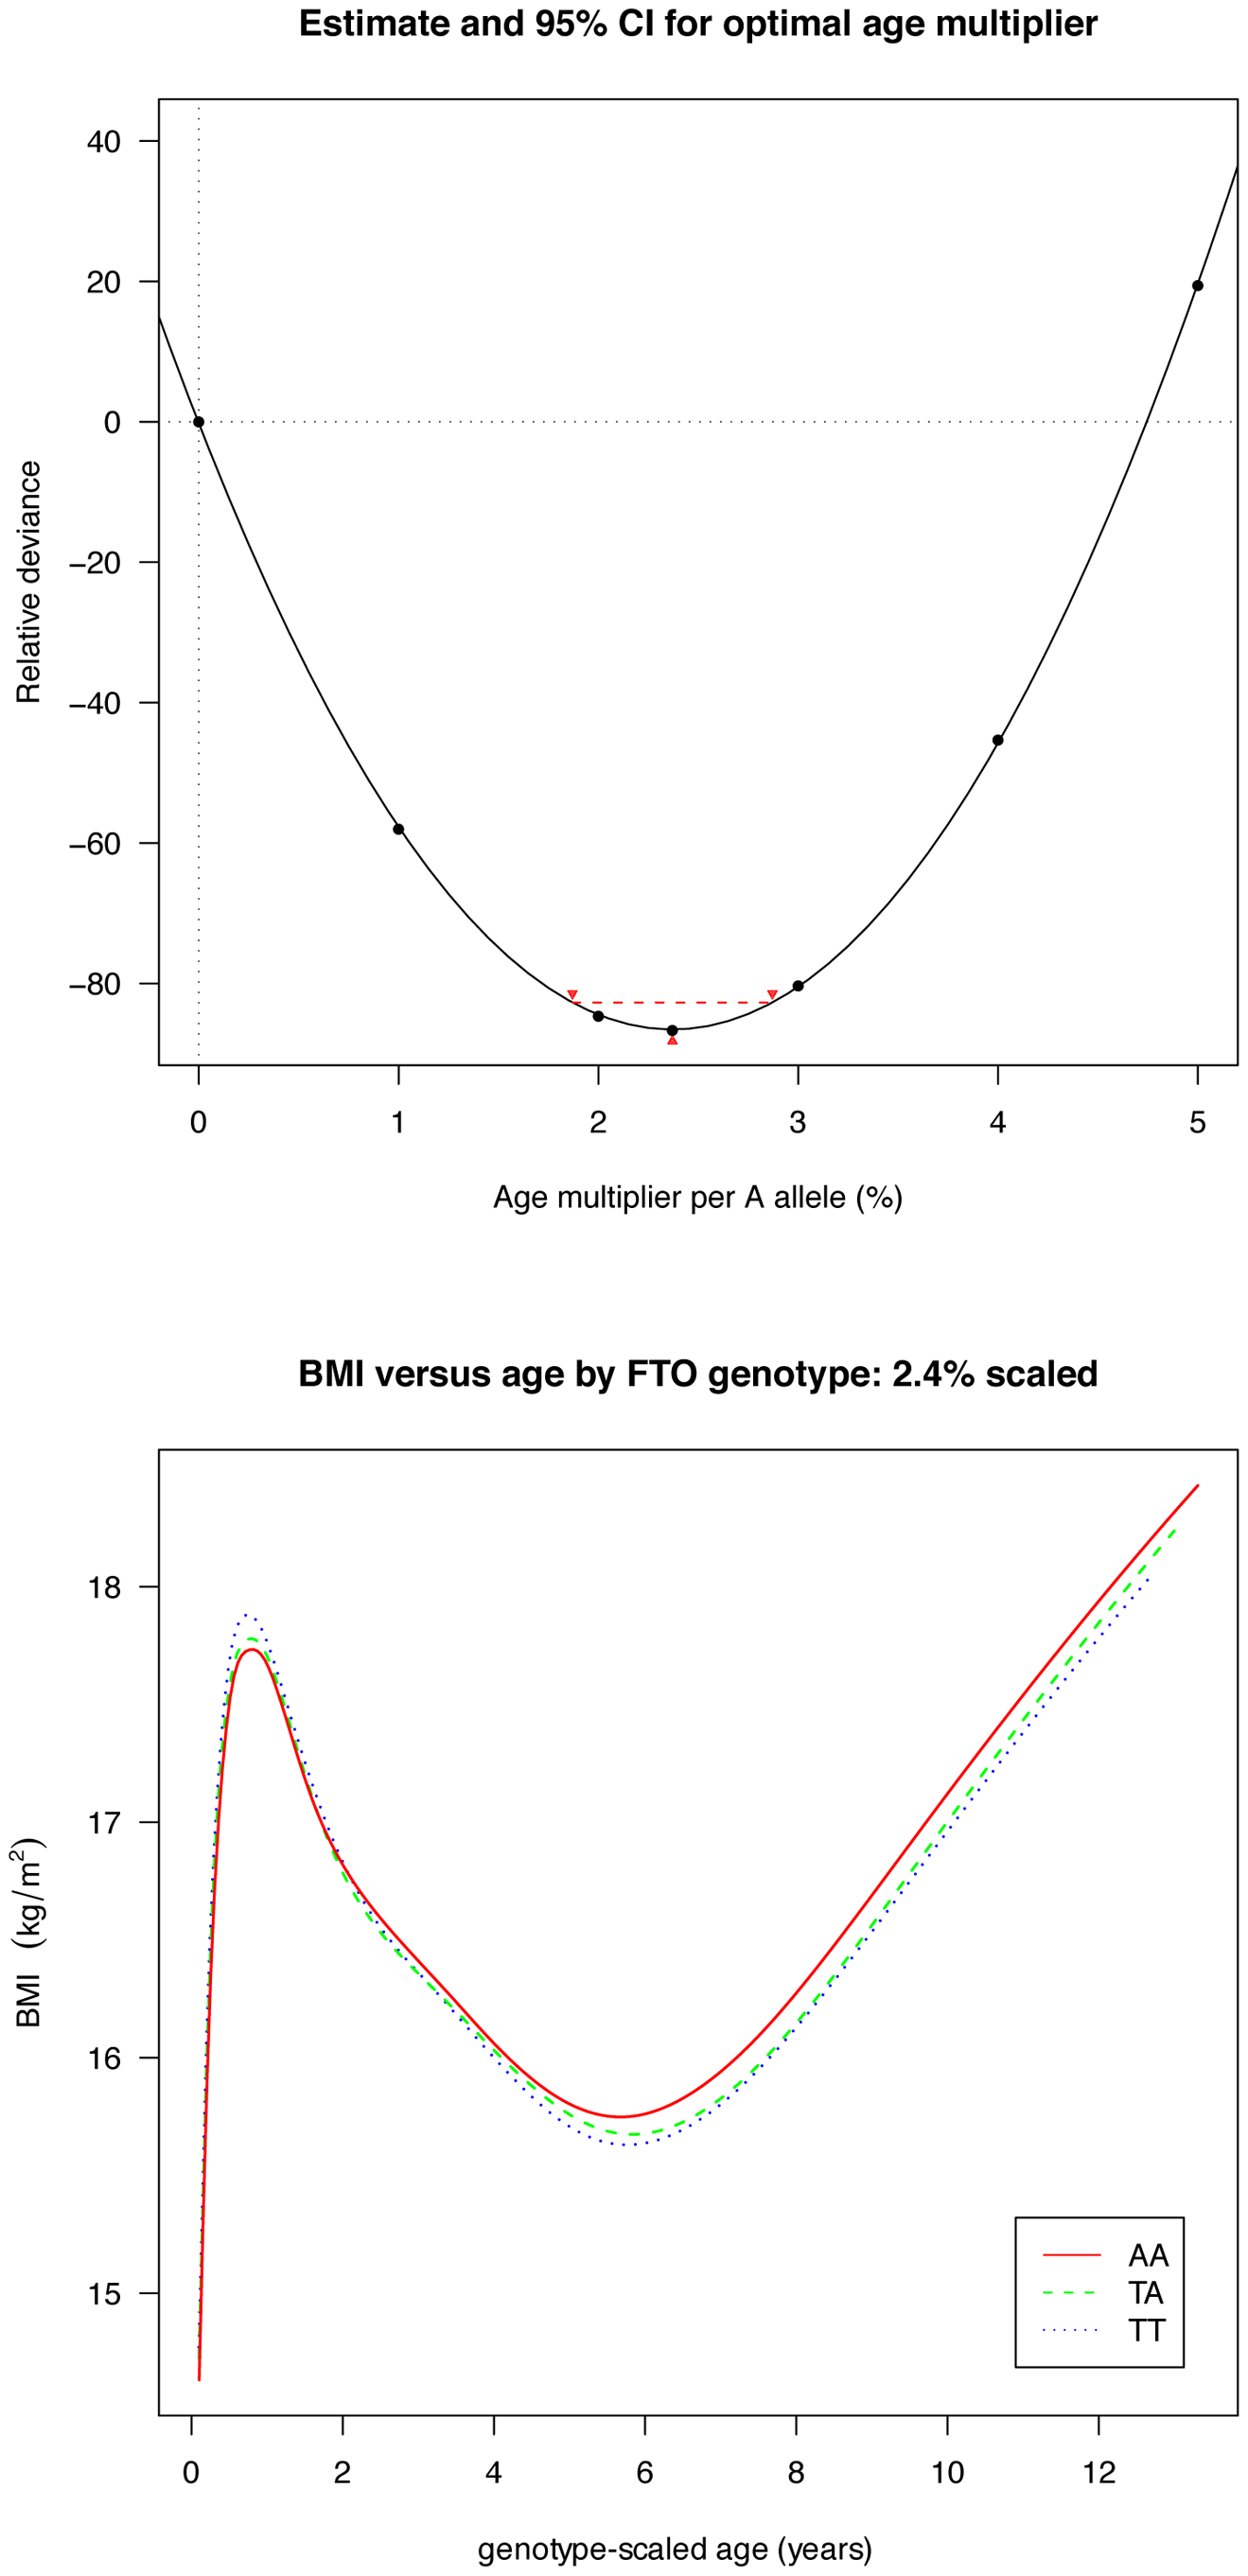 Estimation of the optimal age scaling effect per minor A allele for BMI.